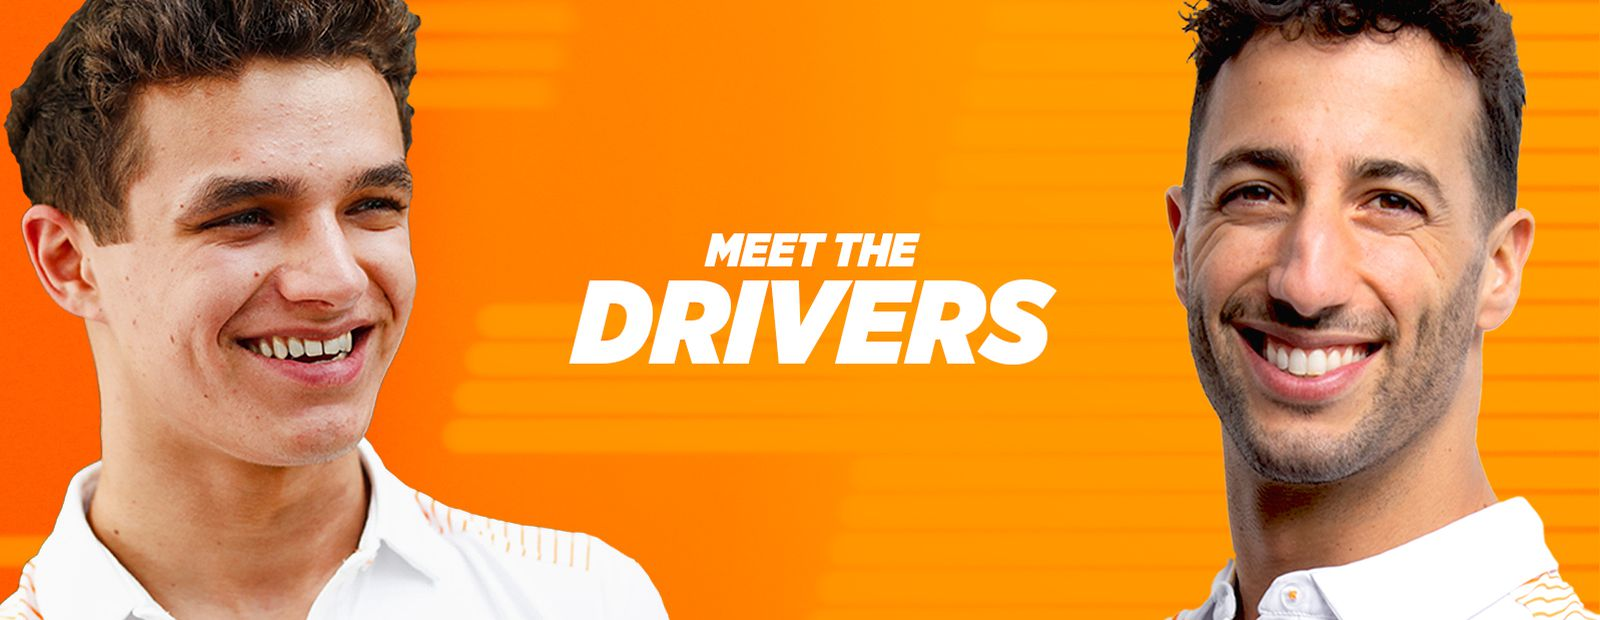 Join one of our drivers for an exclusive Q&A